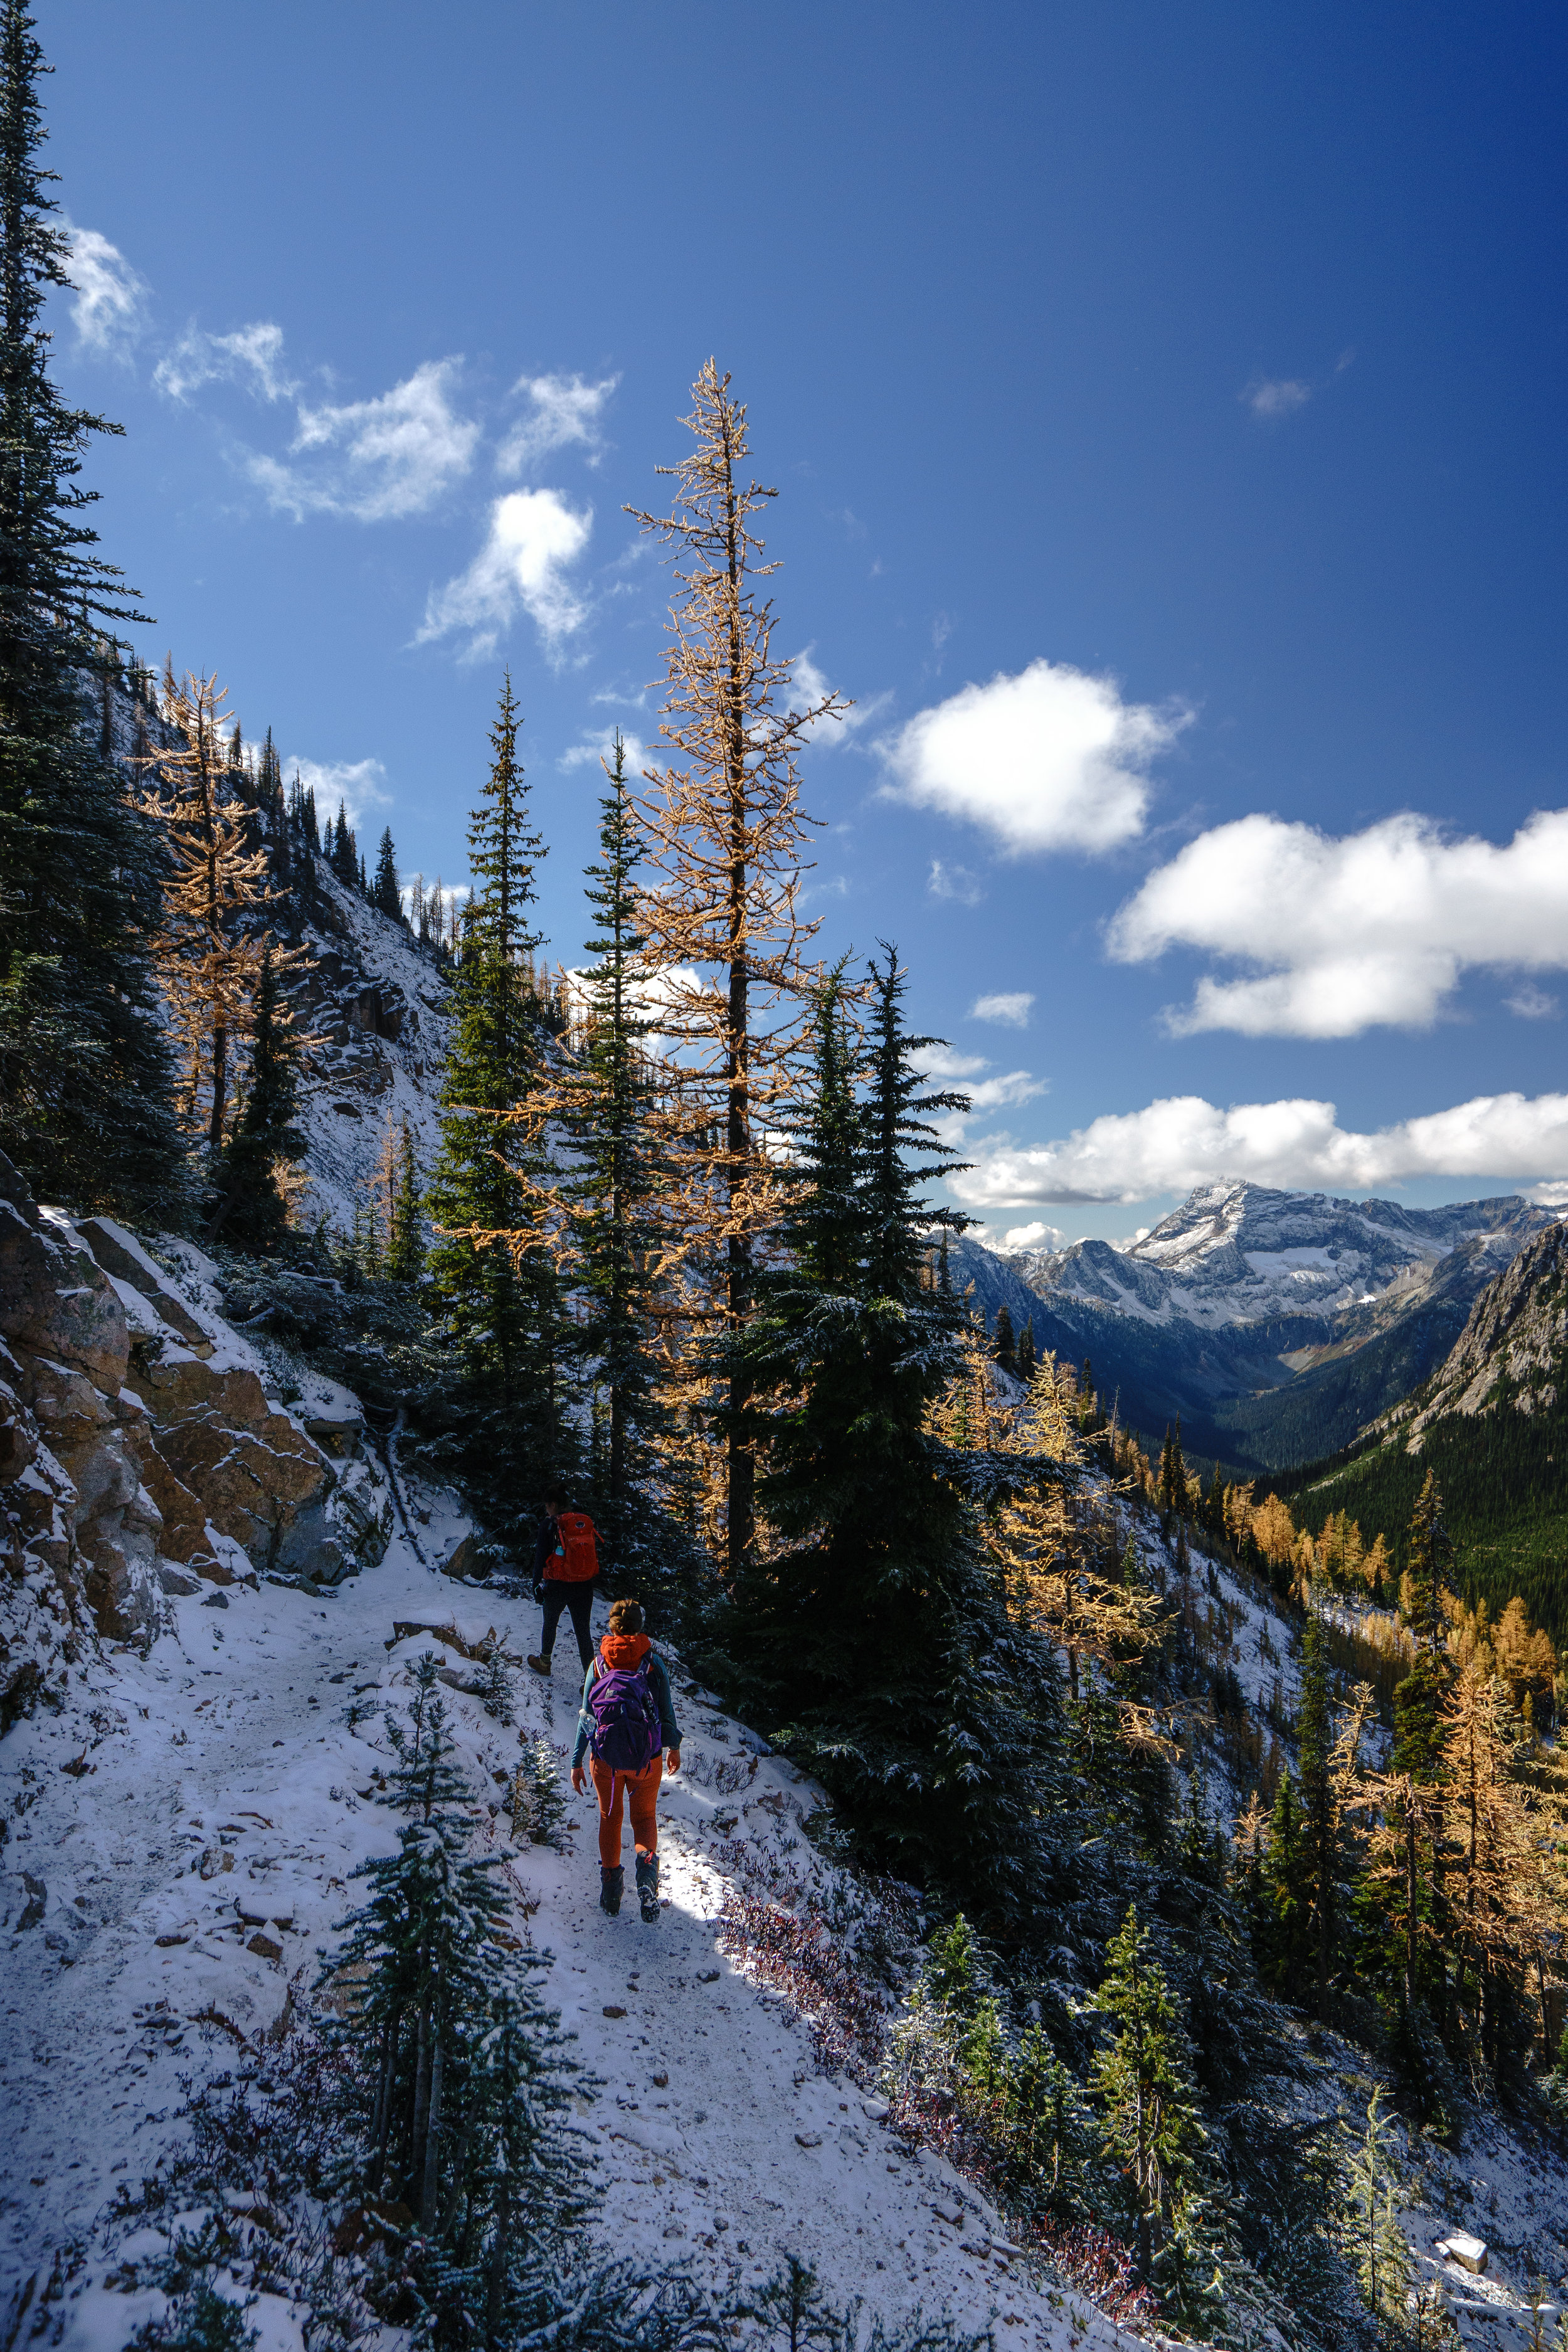 - DATE HIKED: 10/6/18TOTAL DISTANCE/ASCENT: 10 MILES AND 2,000 FTDIFFICULTY: MODERATEREQUIRED PERMIT: NODOG FRIENDLY: YESLOCATION: PACIFIC CREST TRAIL/ NORTH CASCADESRECREATION PASS: NORTHWEST FOREST PASS